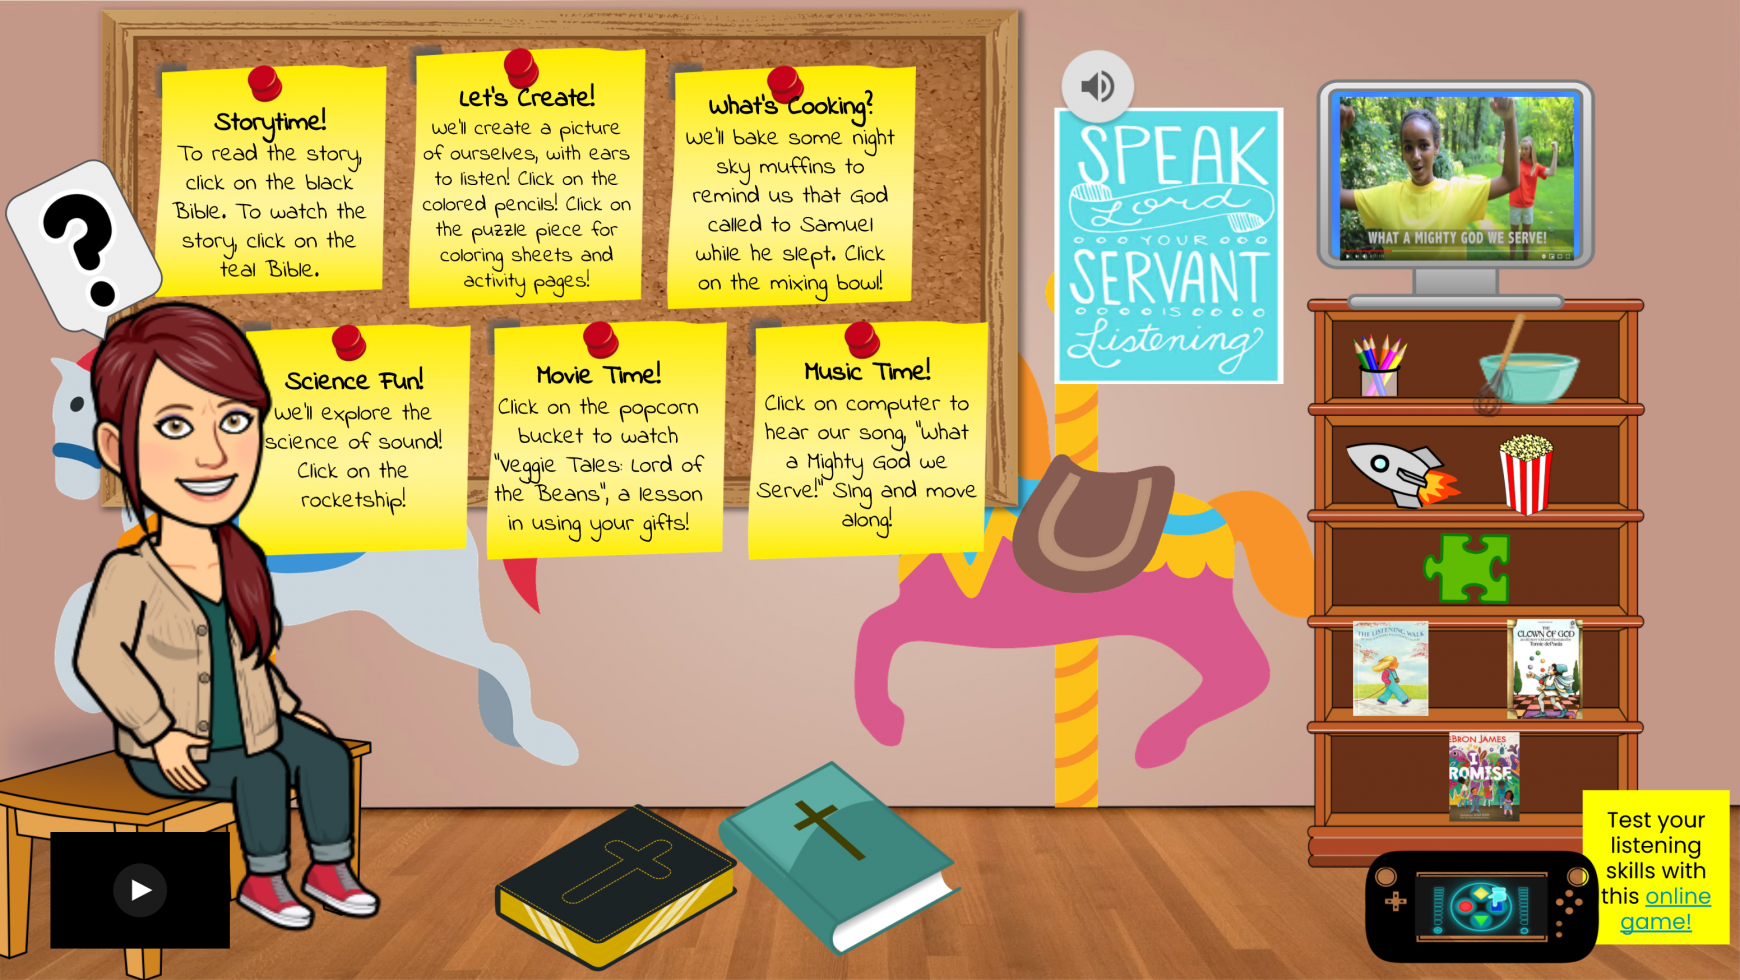 Welcome to our Virtual Christ's Carousel classroom!